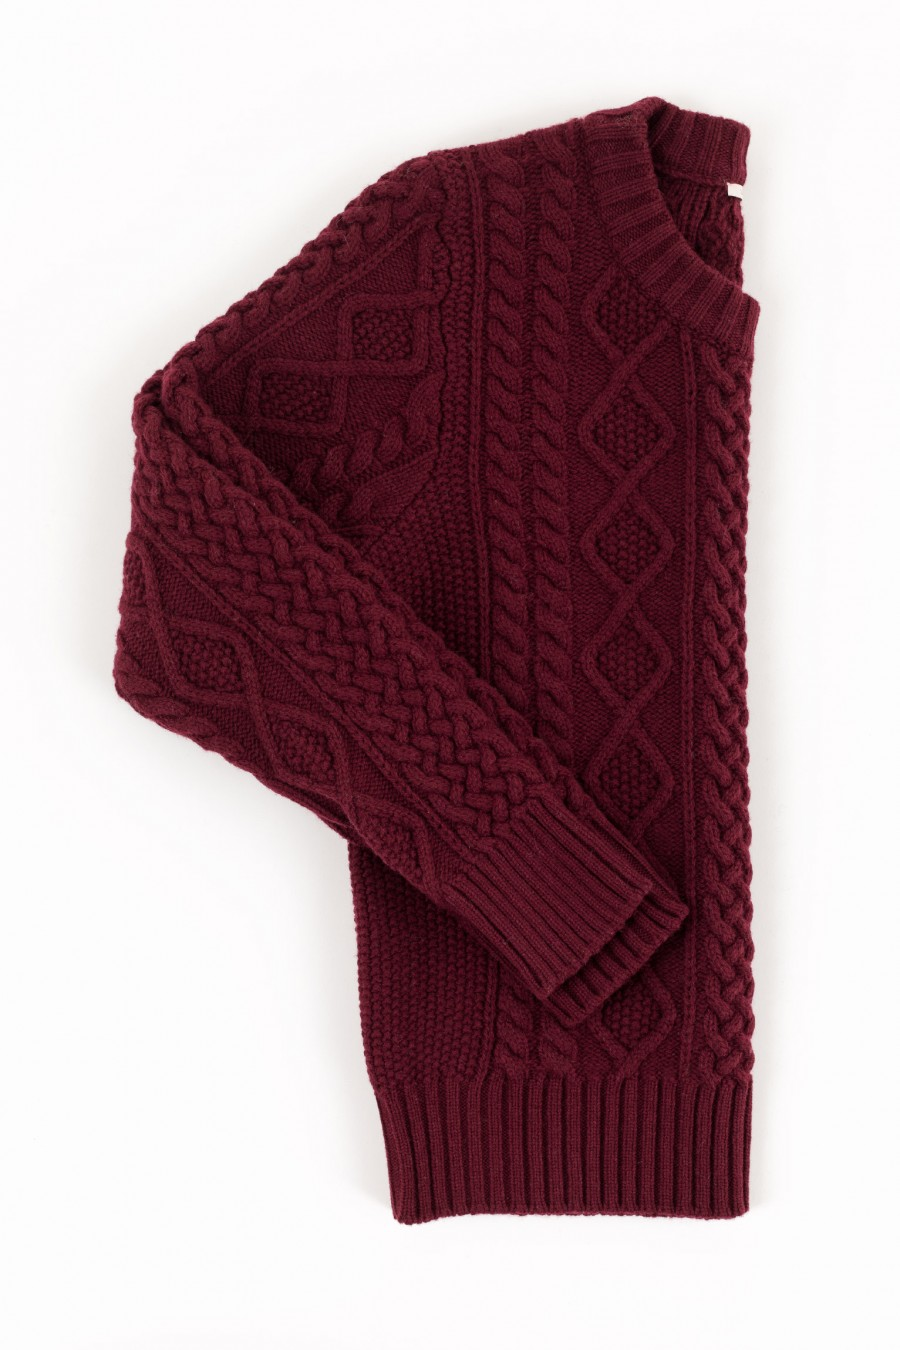 Burgundy fisherman jumper